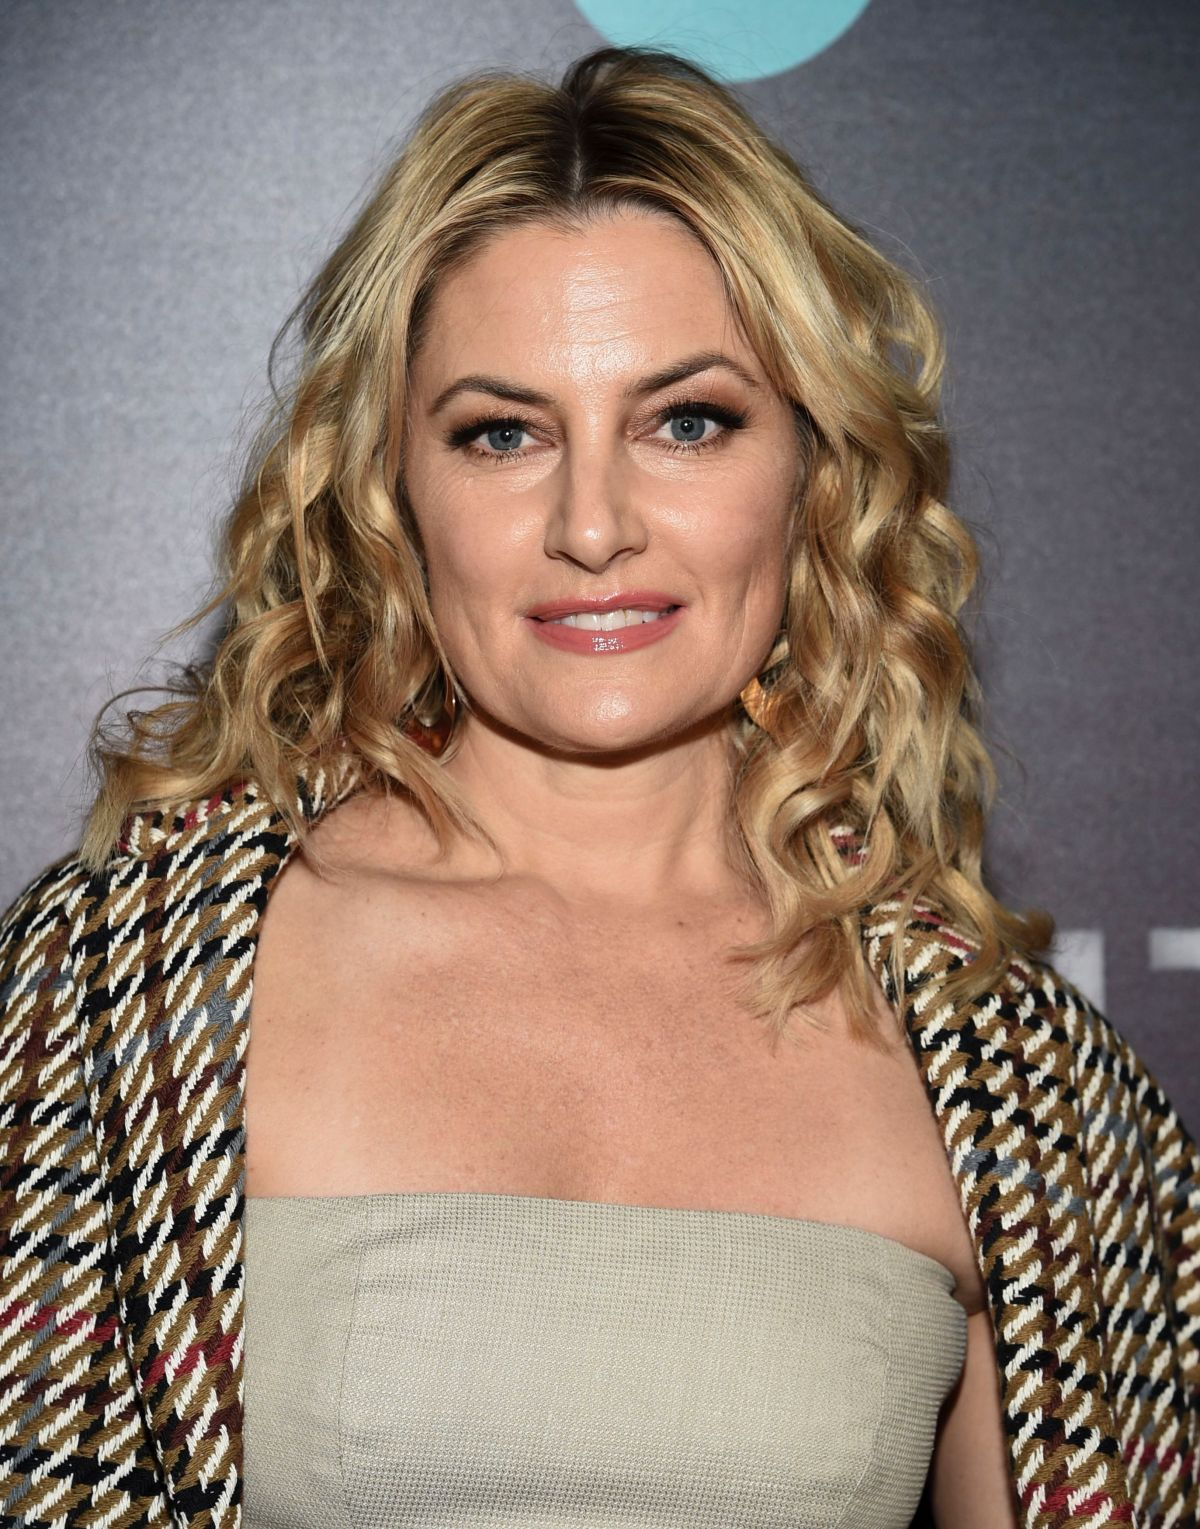 Madchen amick at i am the night premiere in new york 01 22 for Kinderzimmerlampe madchen